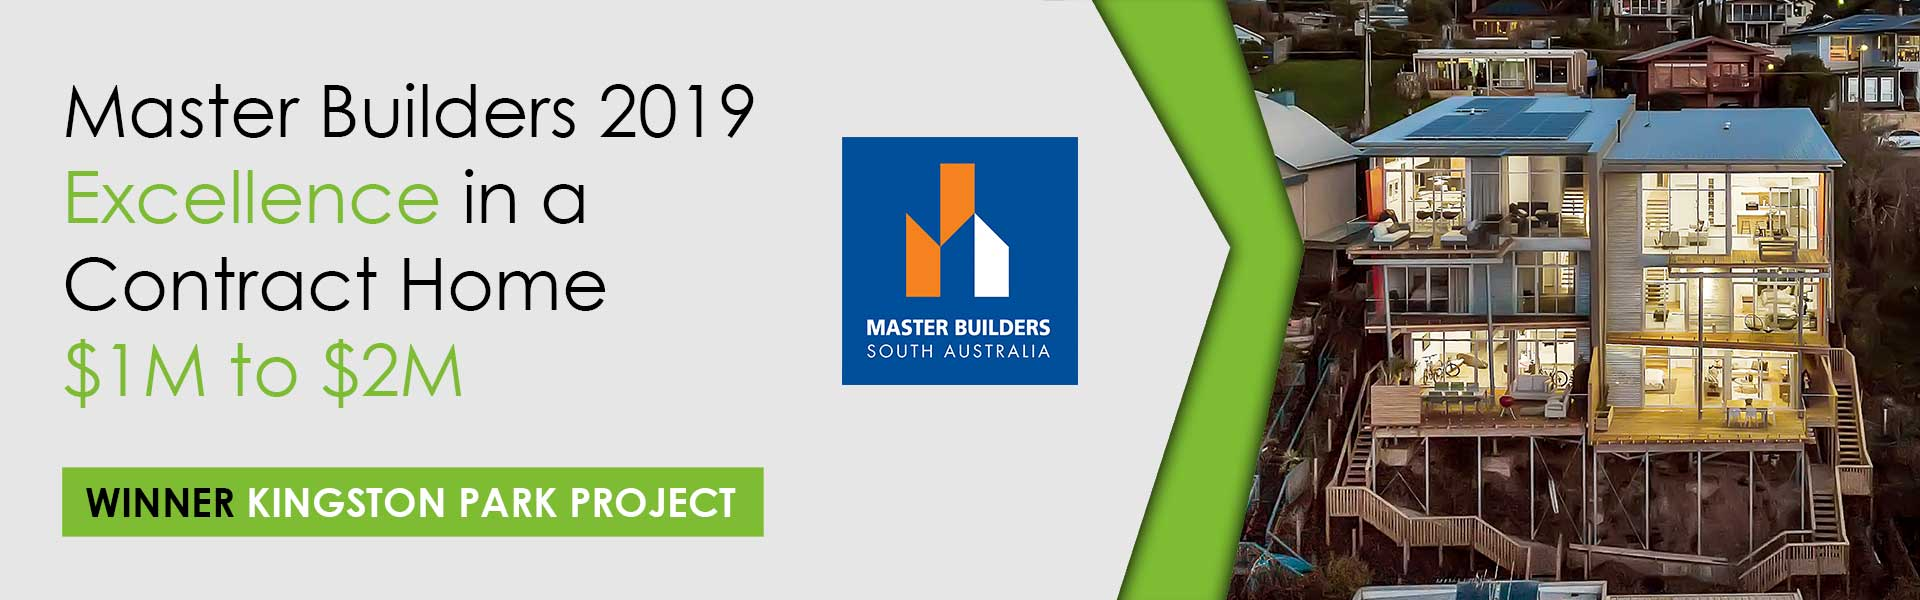 Master Builder Home Builder Awards 2019 Winner